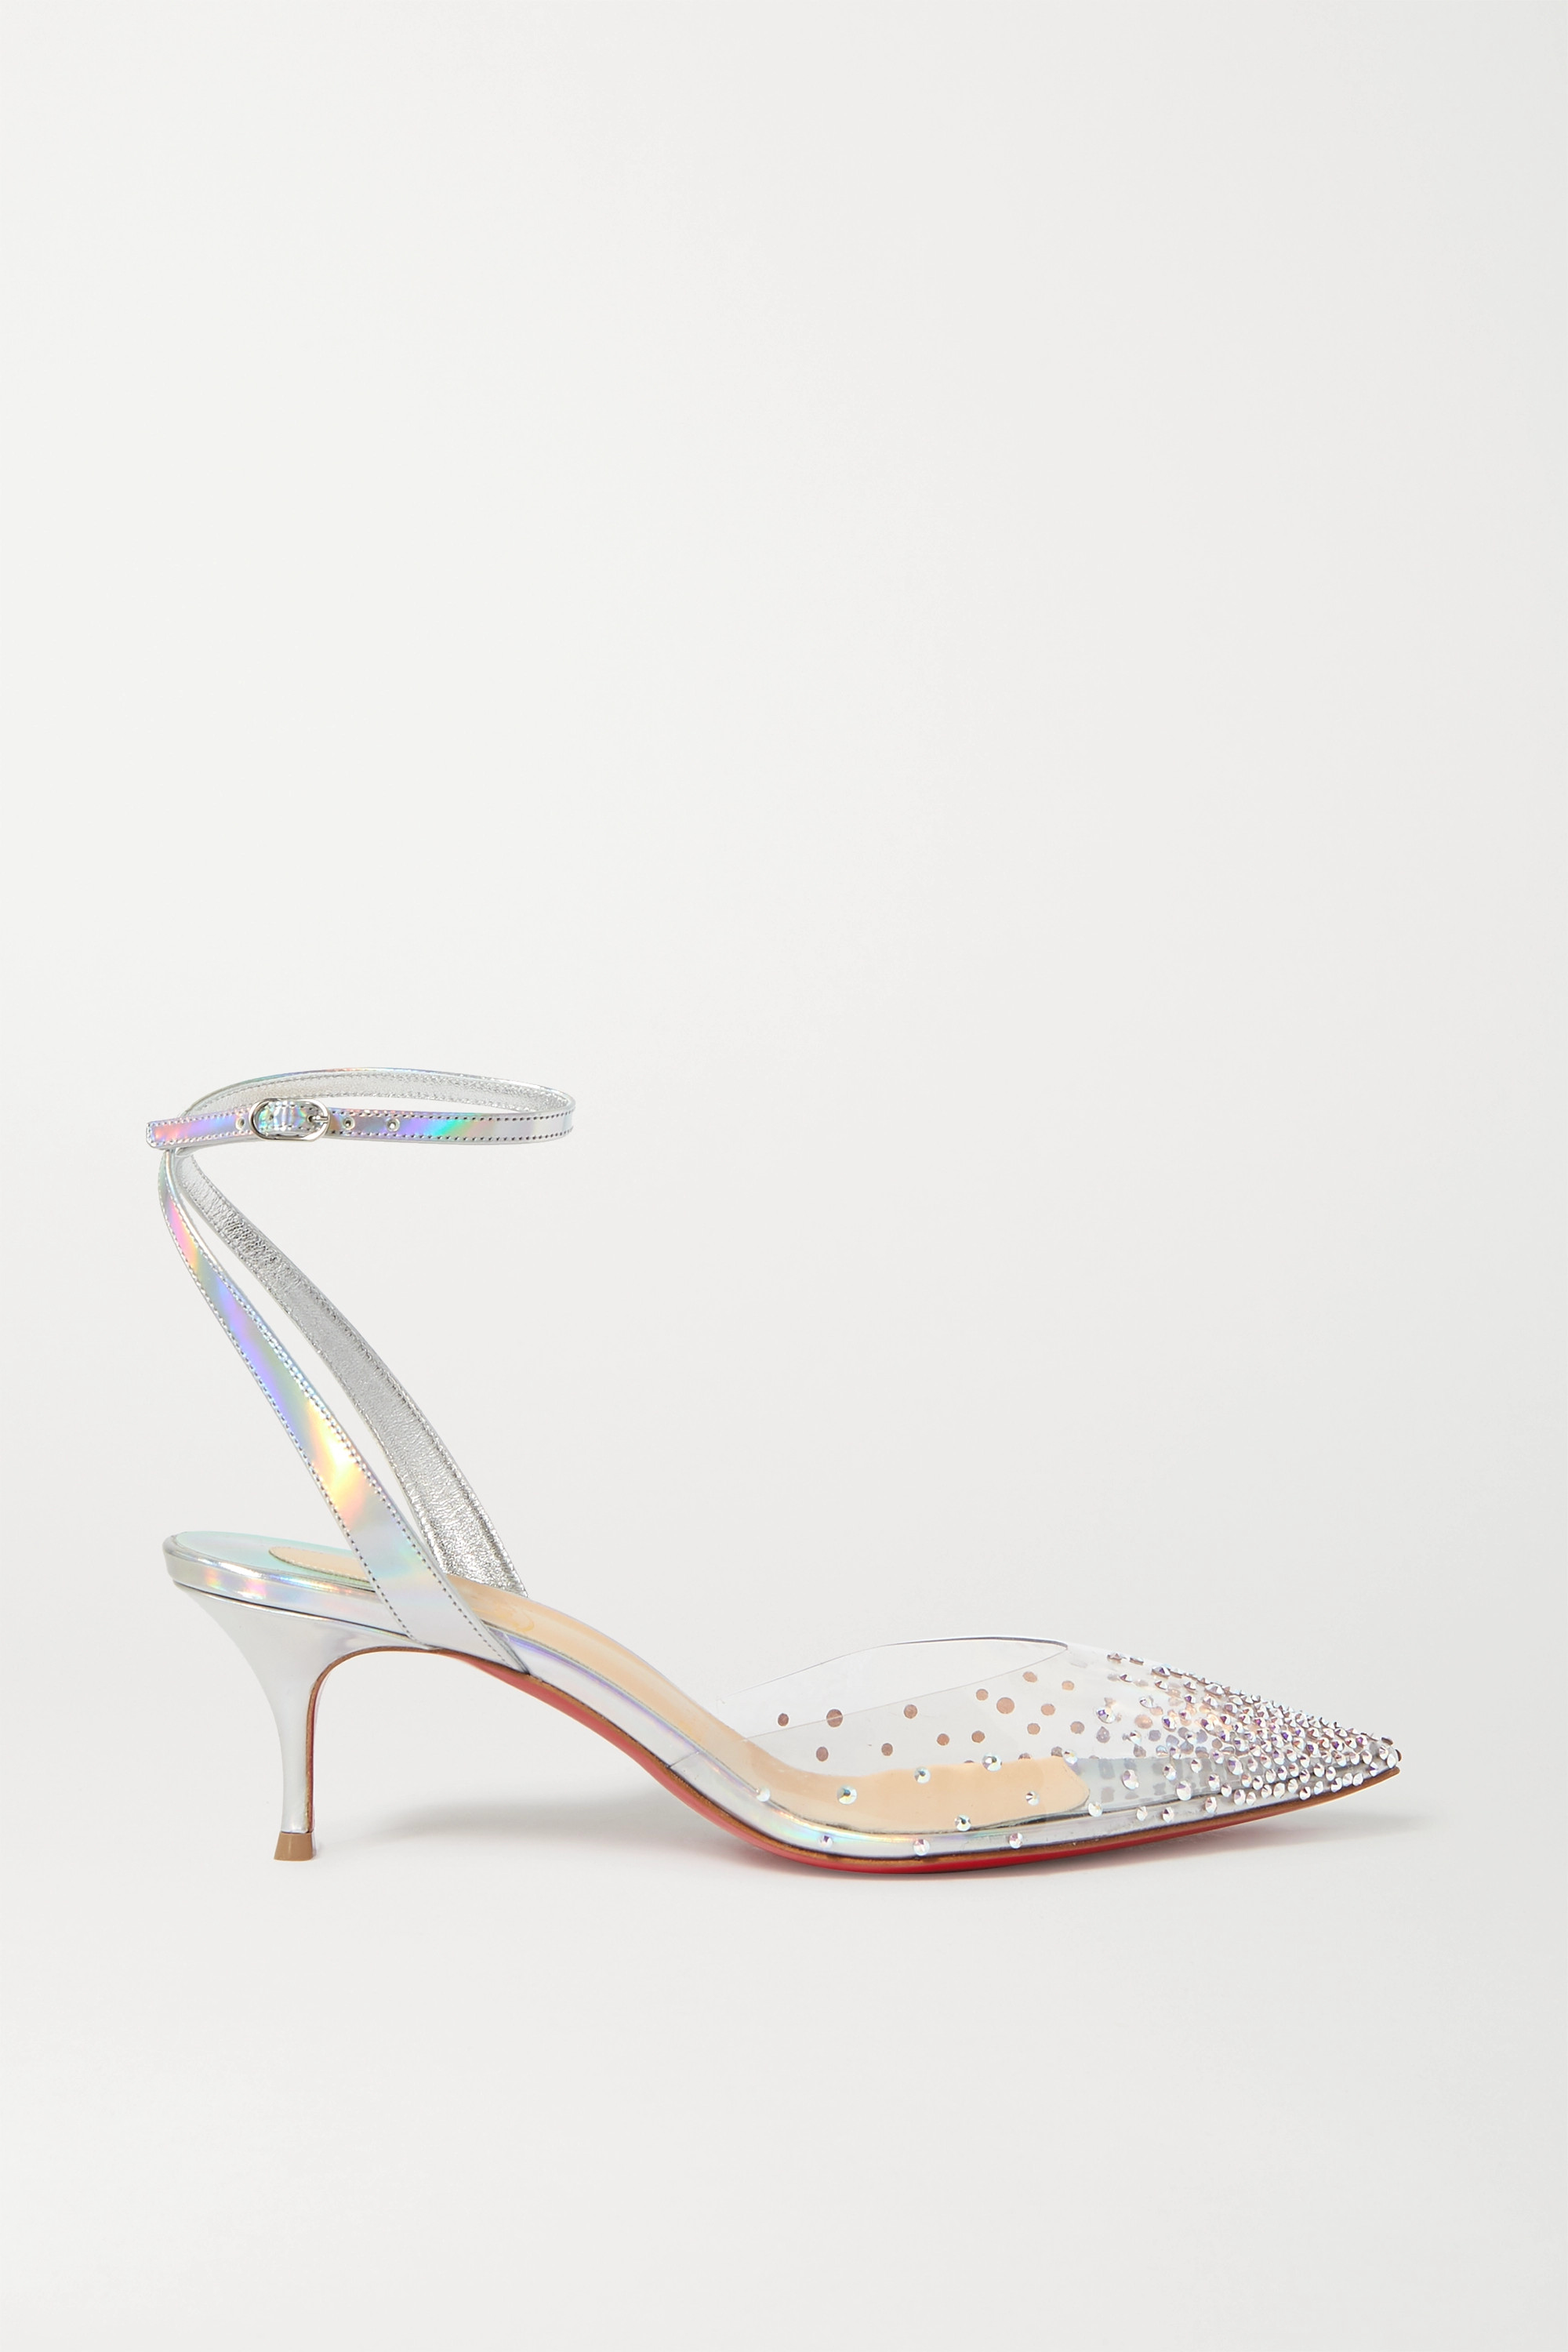 Christian Louboutin Spikaqueen 55 crystal-embellished PVC and iridescent leather pumps